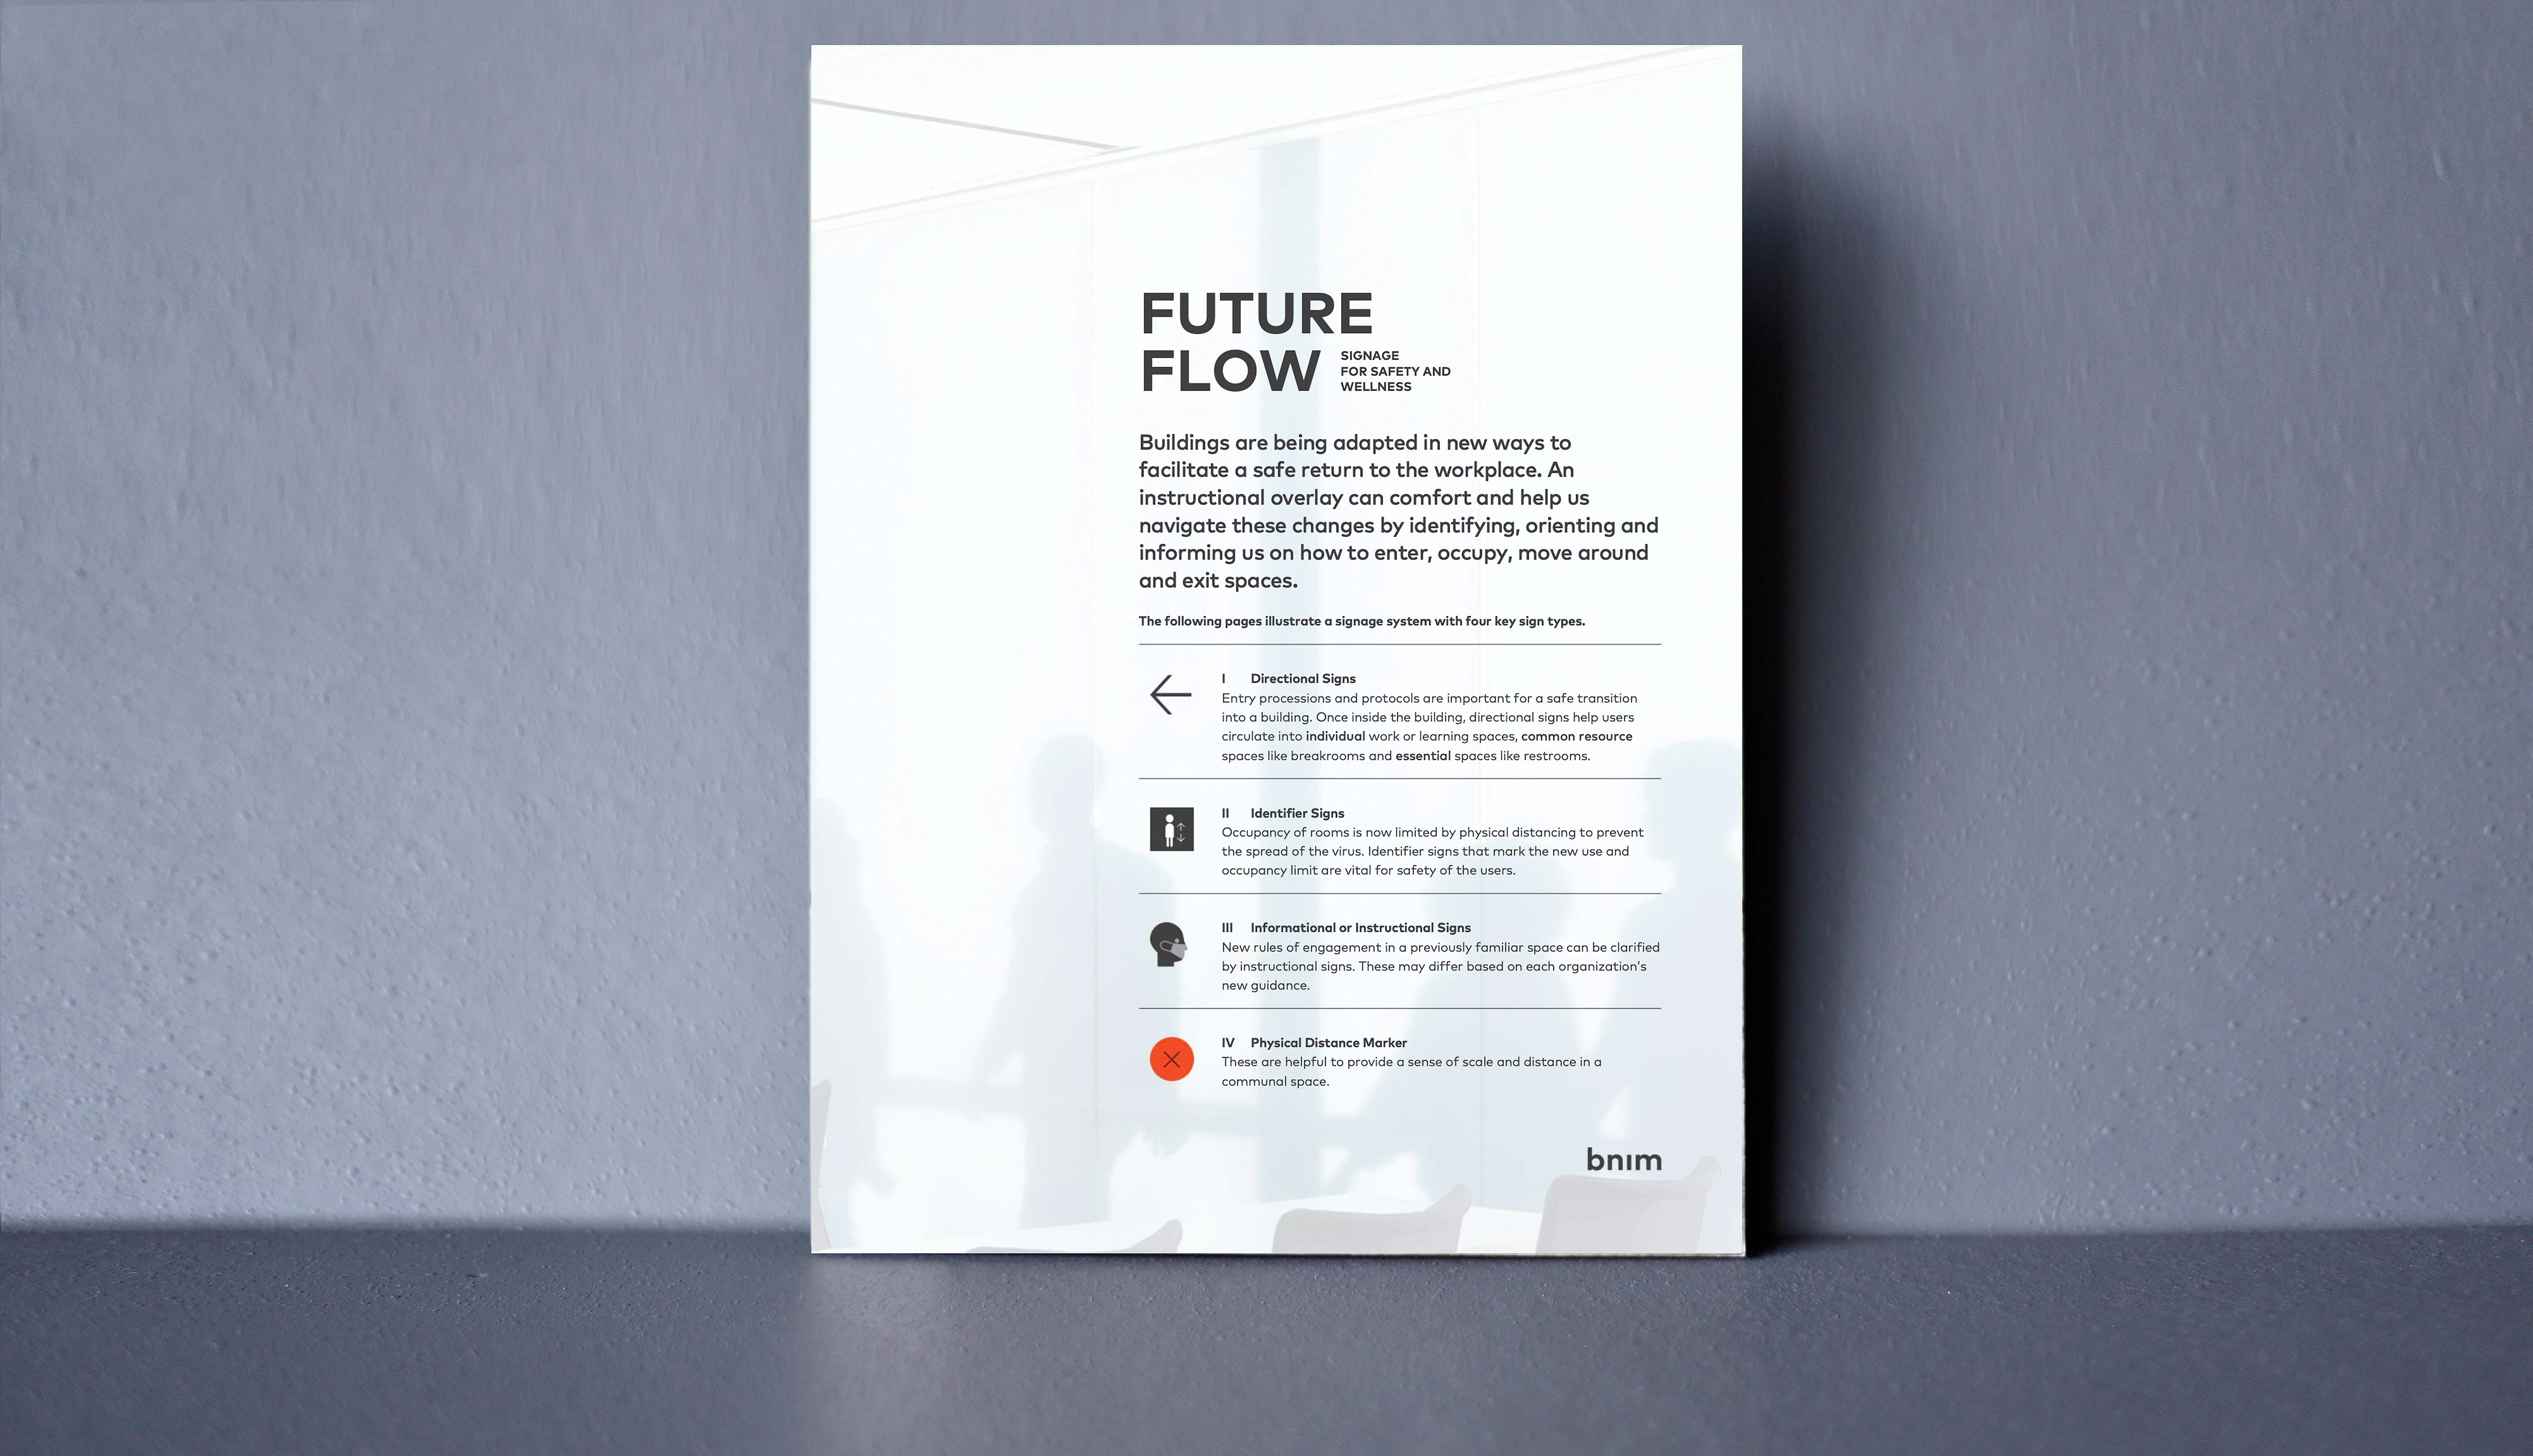 Future Flow Signage - Designing for Continuity and Resiliency